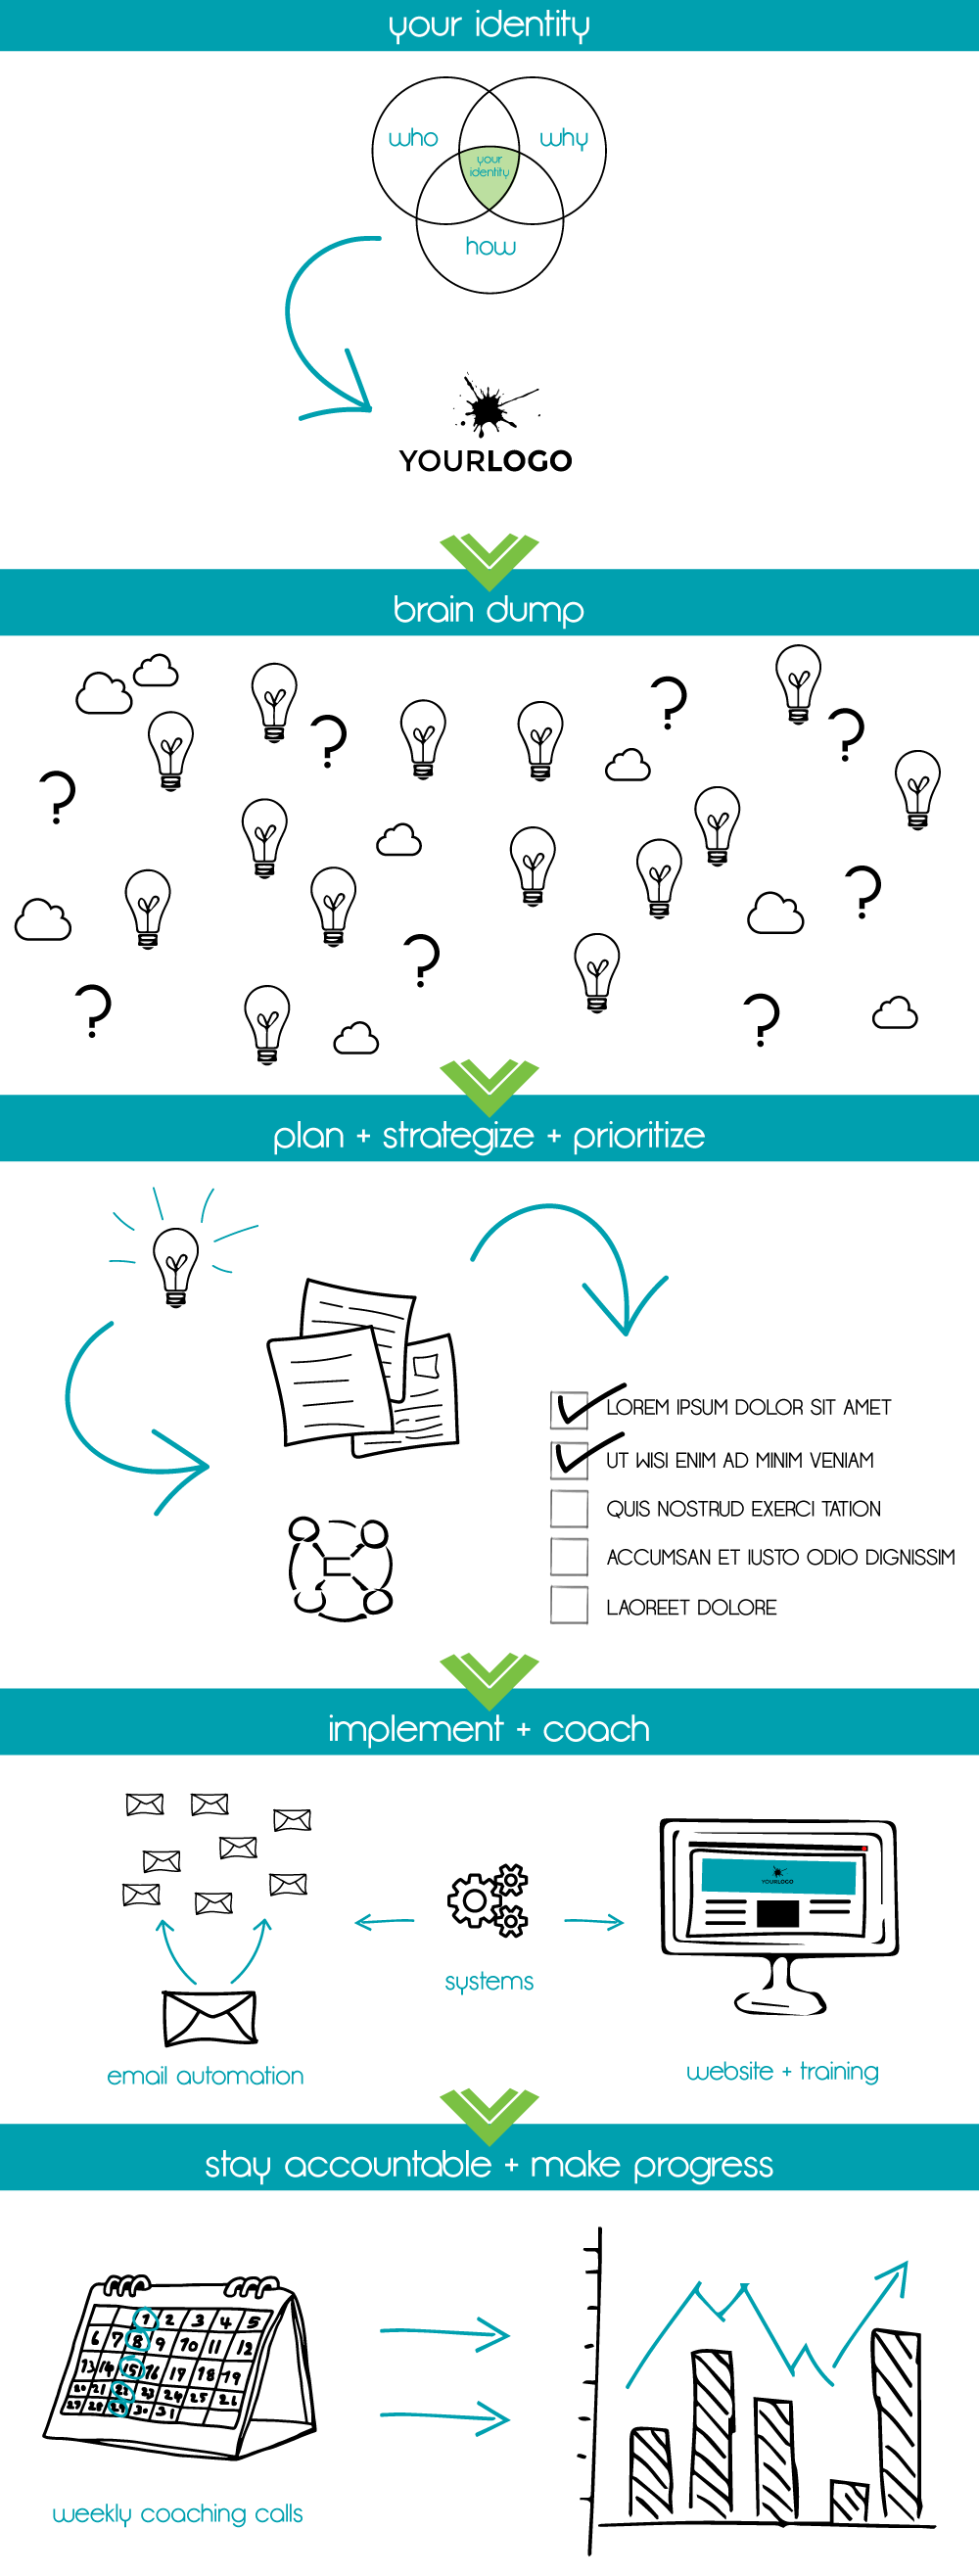 Bobolink Creative Consulting + Coaching Process